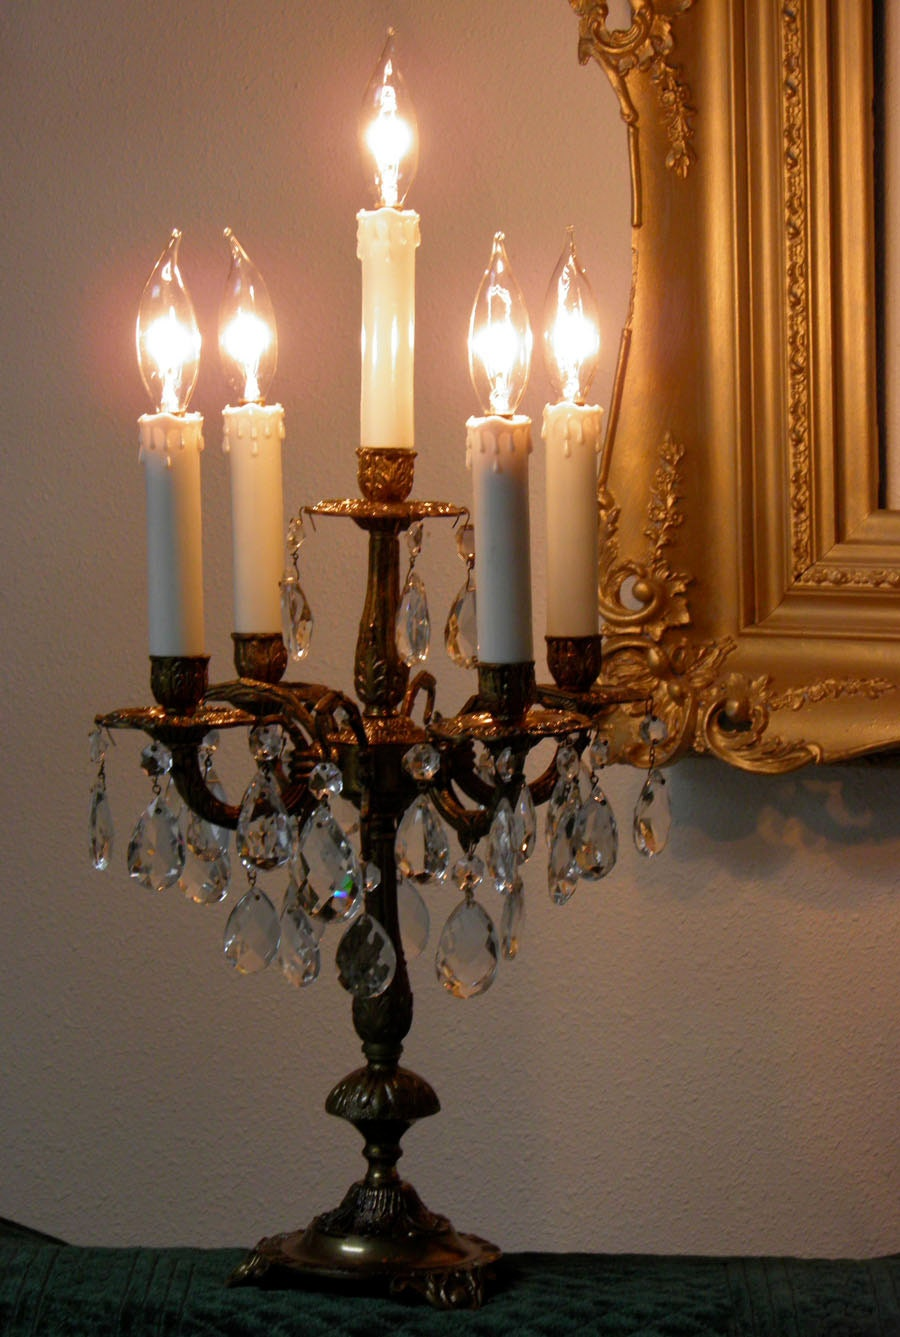 Table Chandelier Electric Candelabra Antique Candelabra